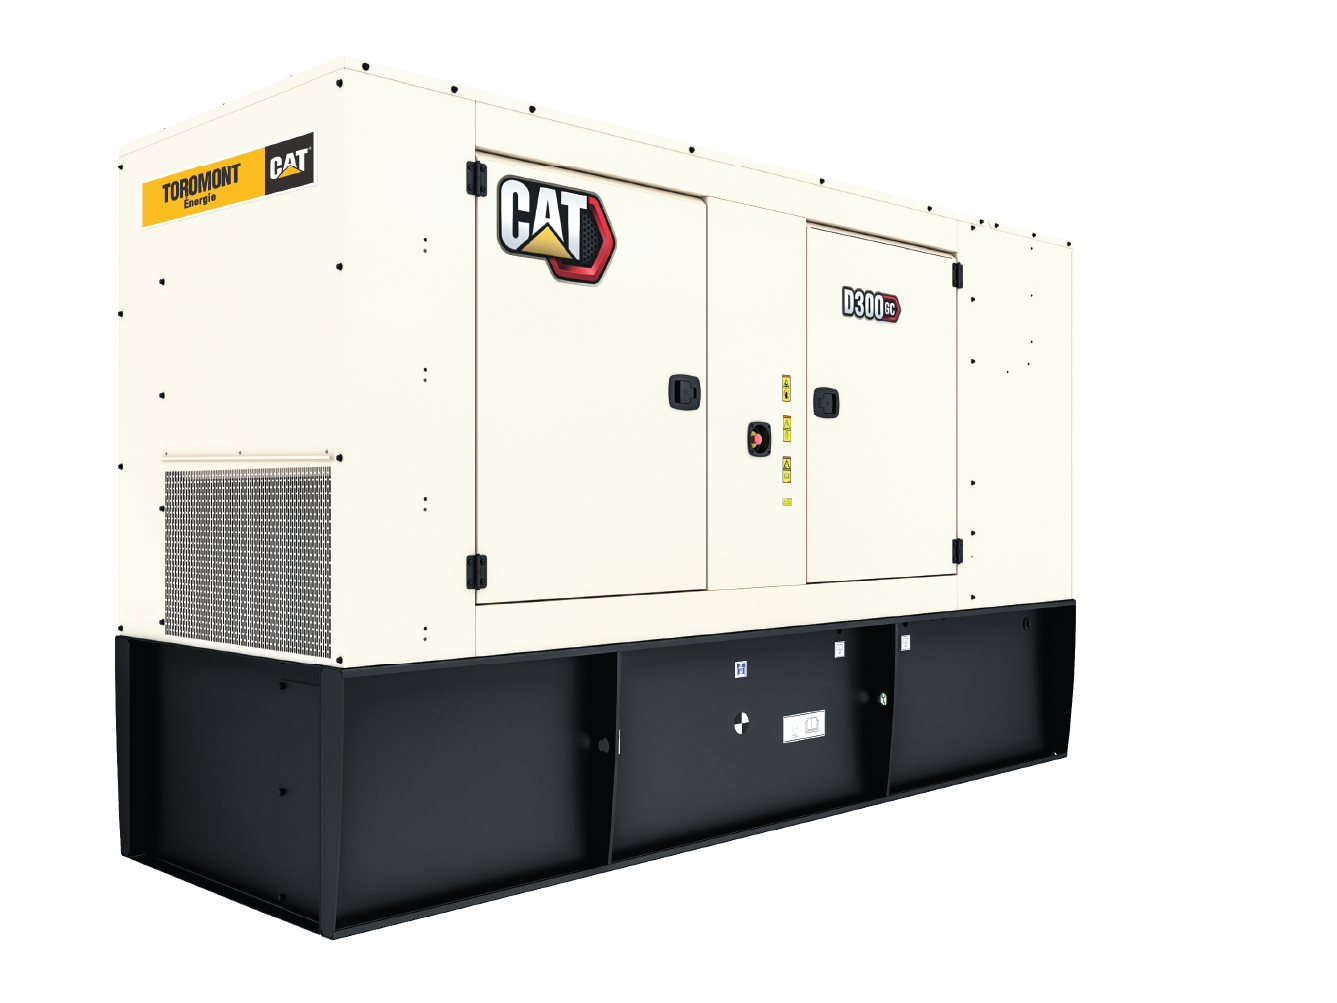 Download the GC Generator Set Specs Package. | Generators that are built to perform and priced to complete.